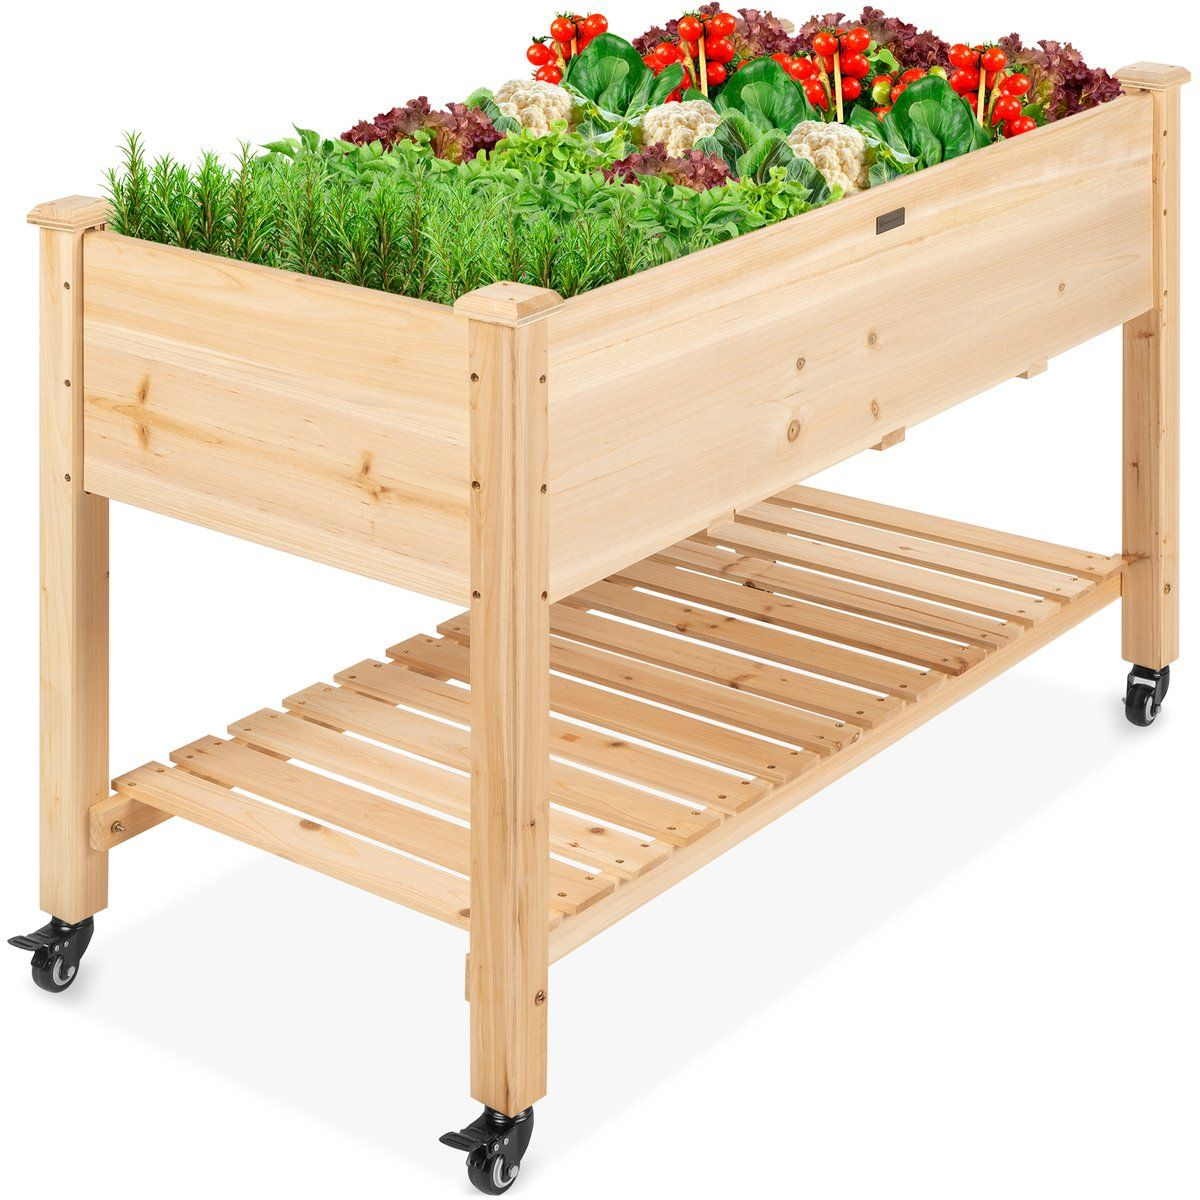 Mobile Raised Garden Bed Elevated Wood Planter W/ Wheels